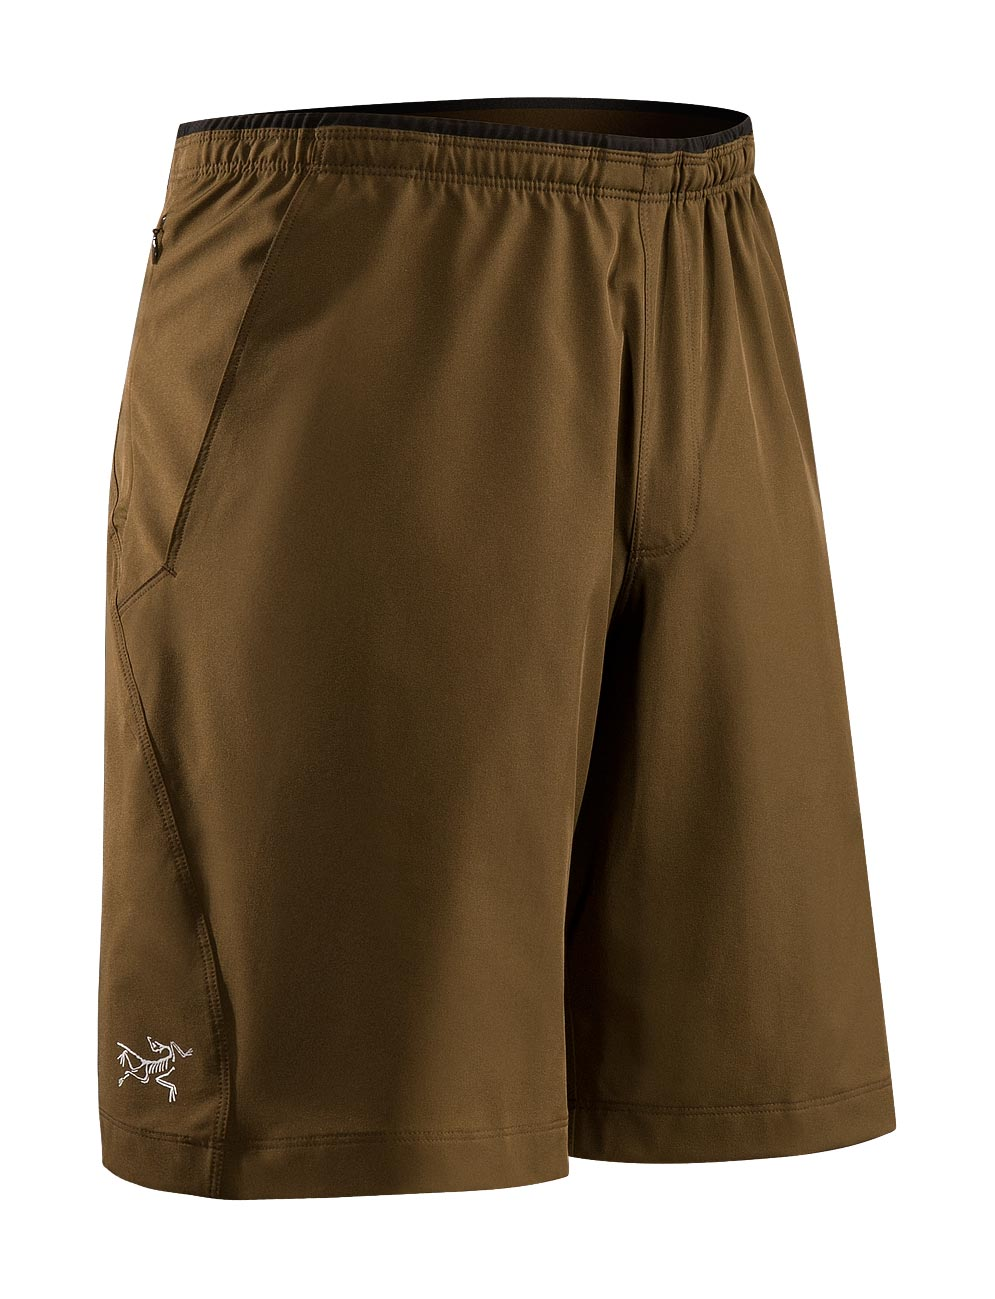 Arcteryx Donegal Brown Torus Short